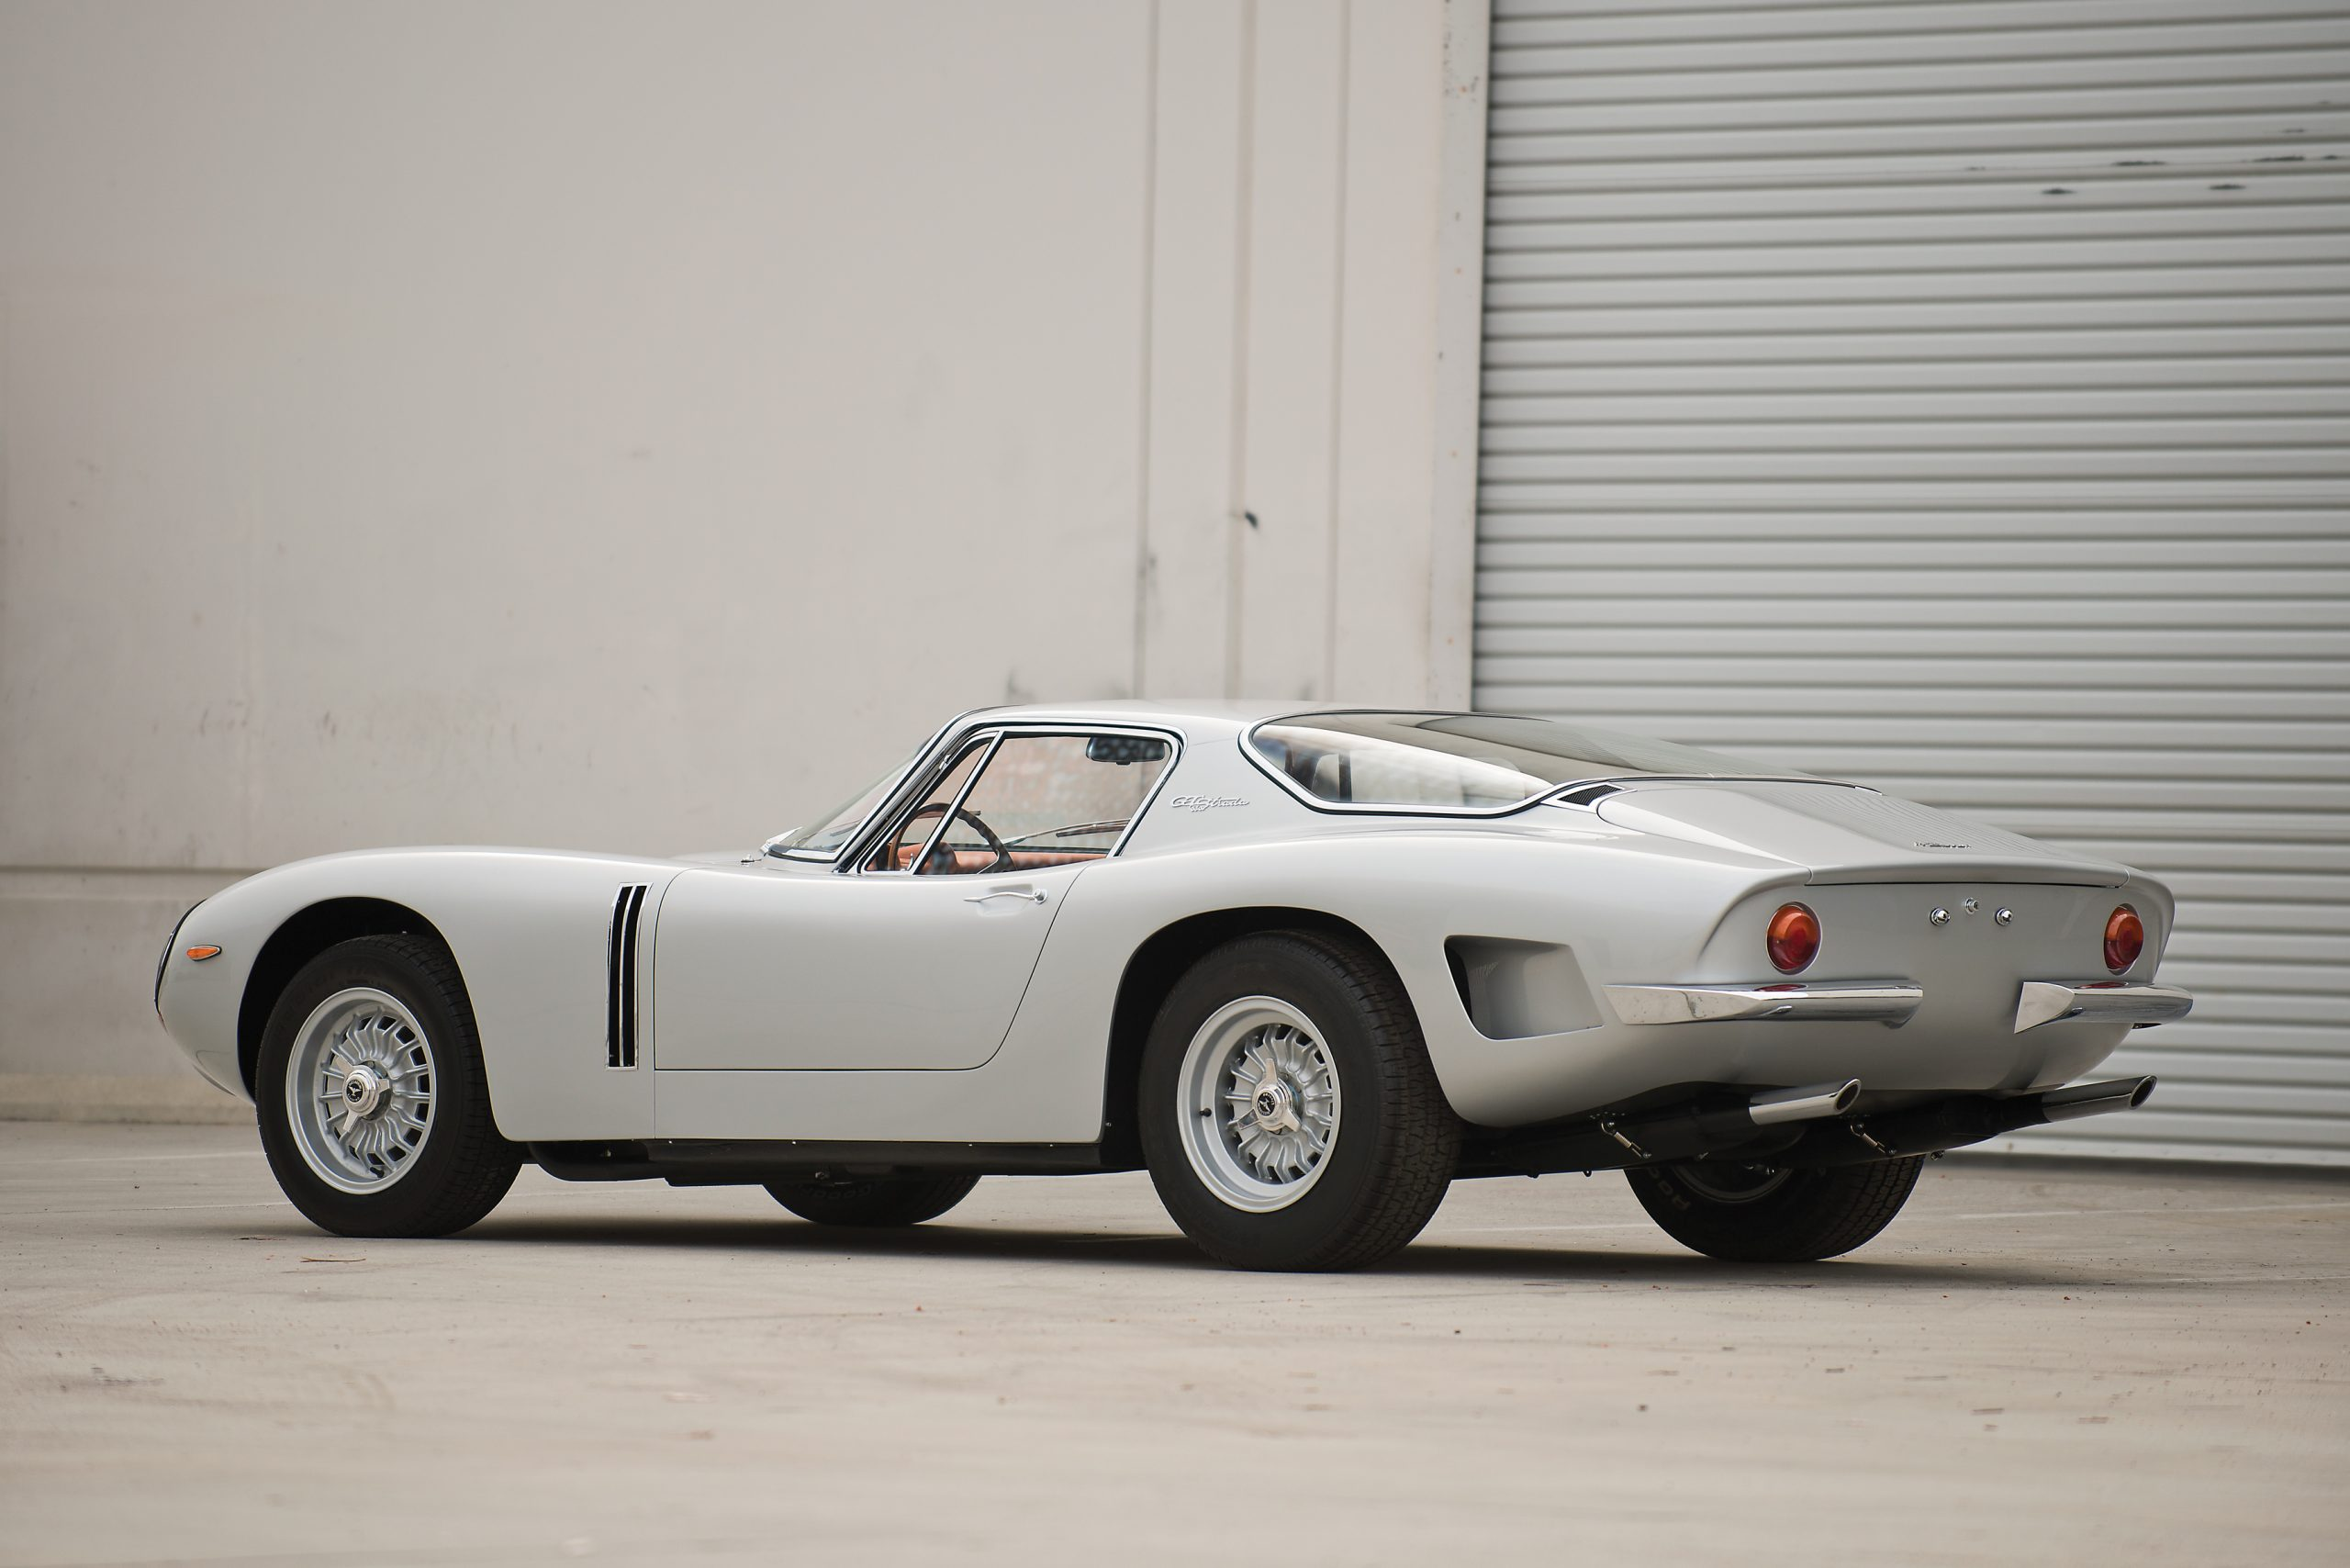 1965 Bizzarrini 5300 GT Strada Alloy rear three quarter